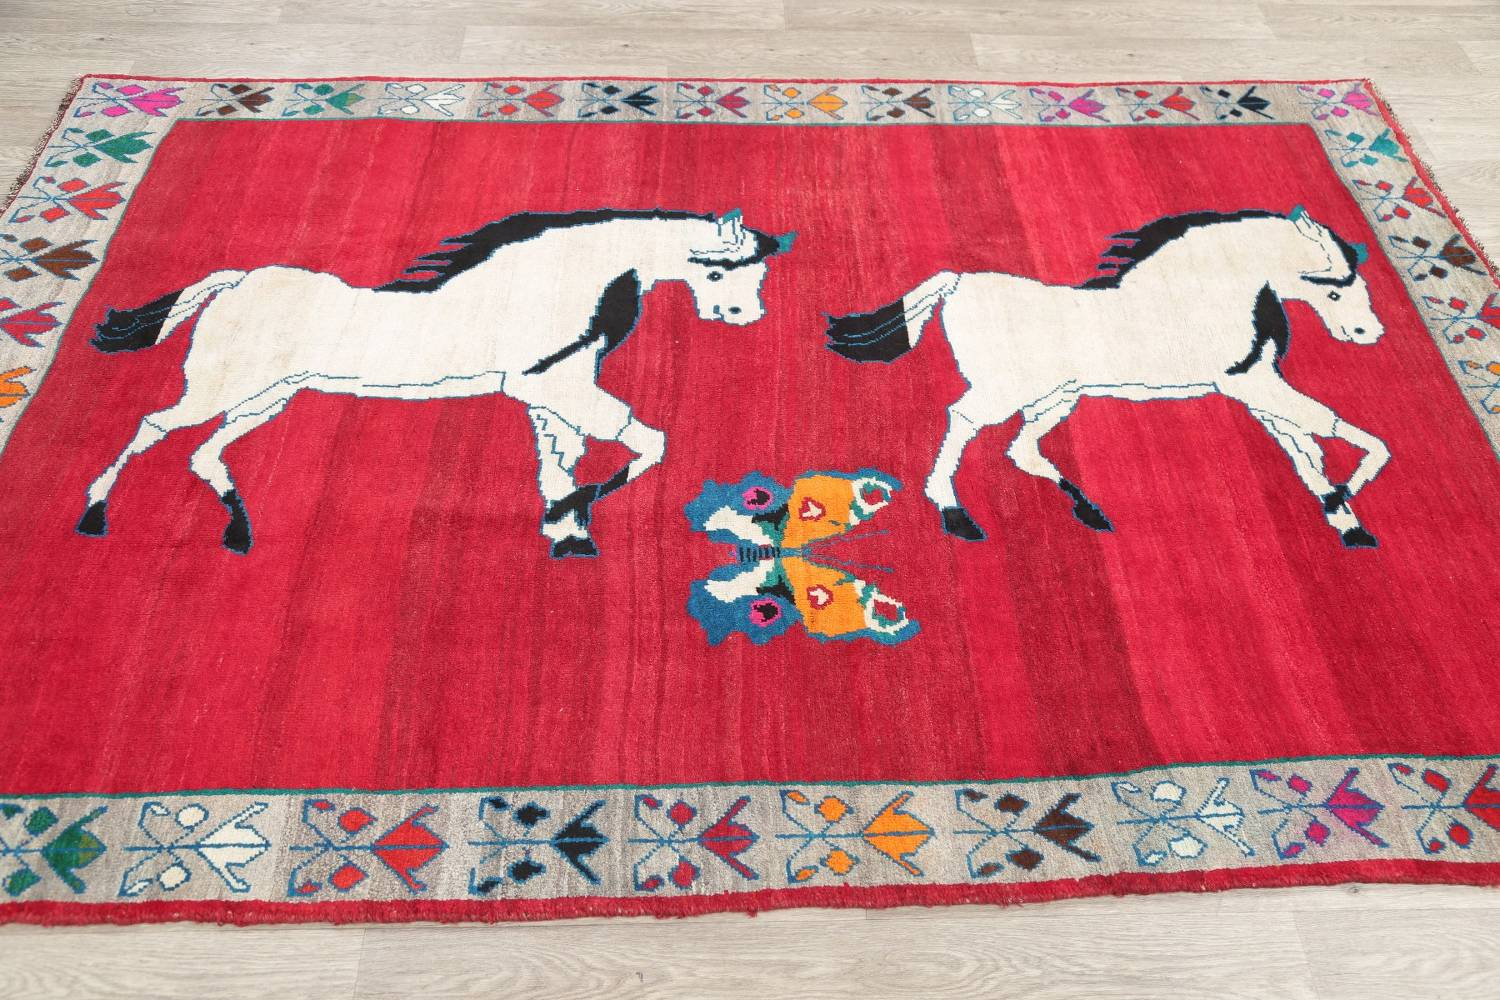 Animal Pictorial Gabbeh Persian Hand-Knotted 5x8 Wool Area Rug image 13